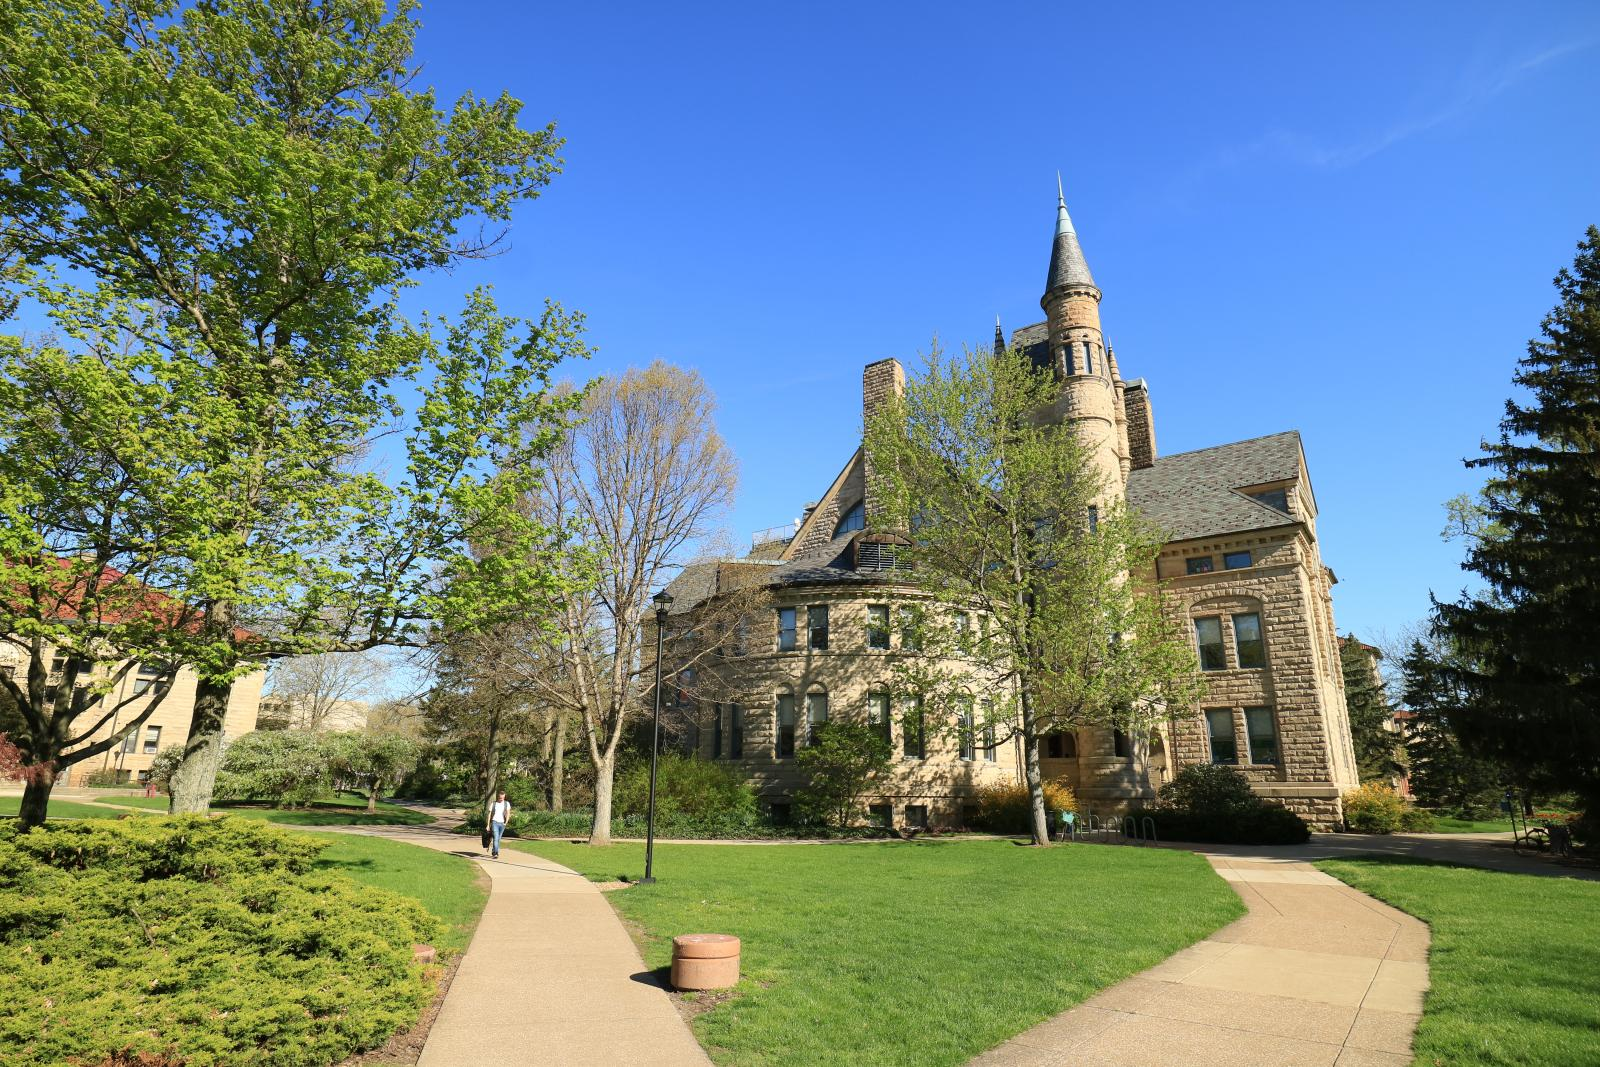 view of Peters Hall from a distance.